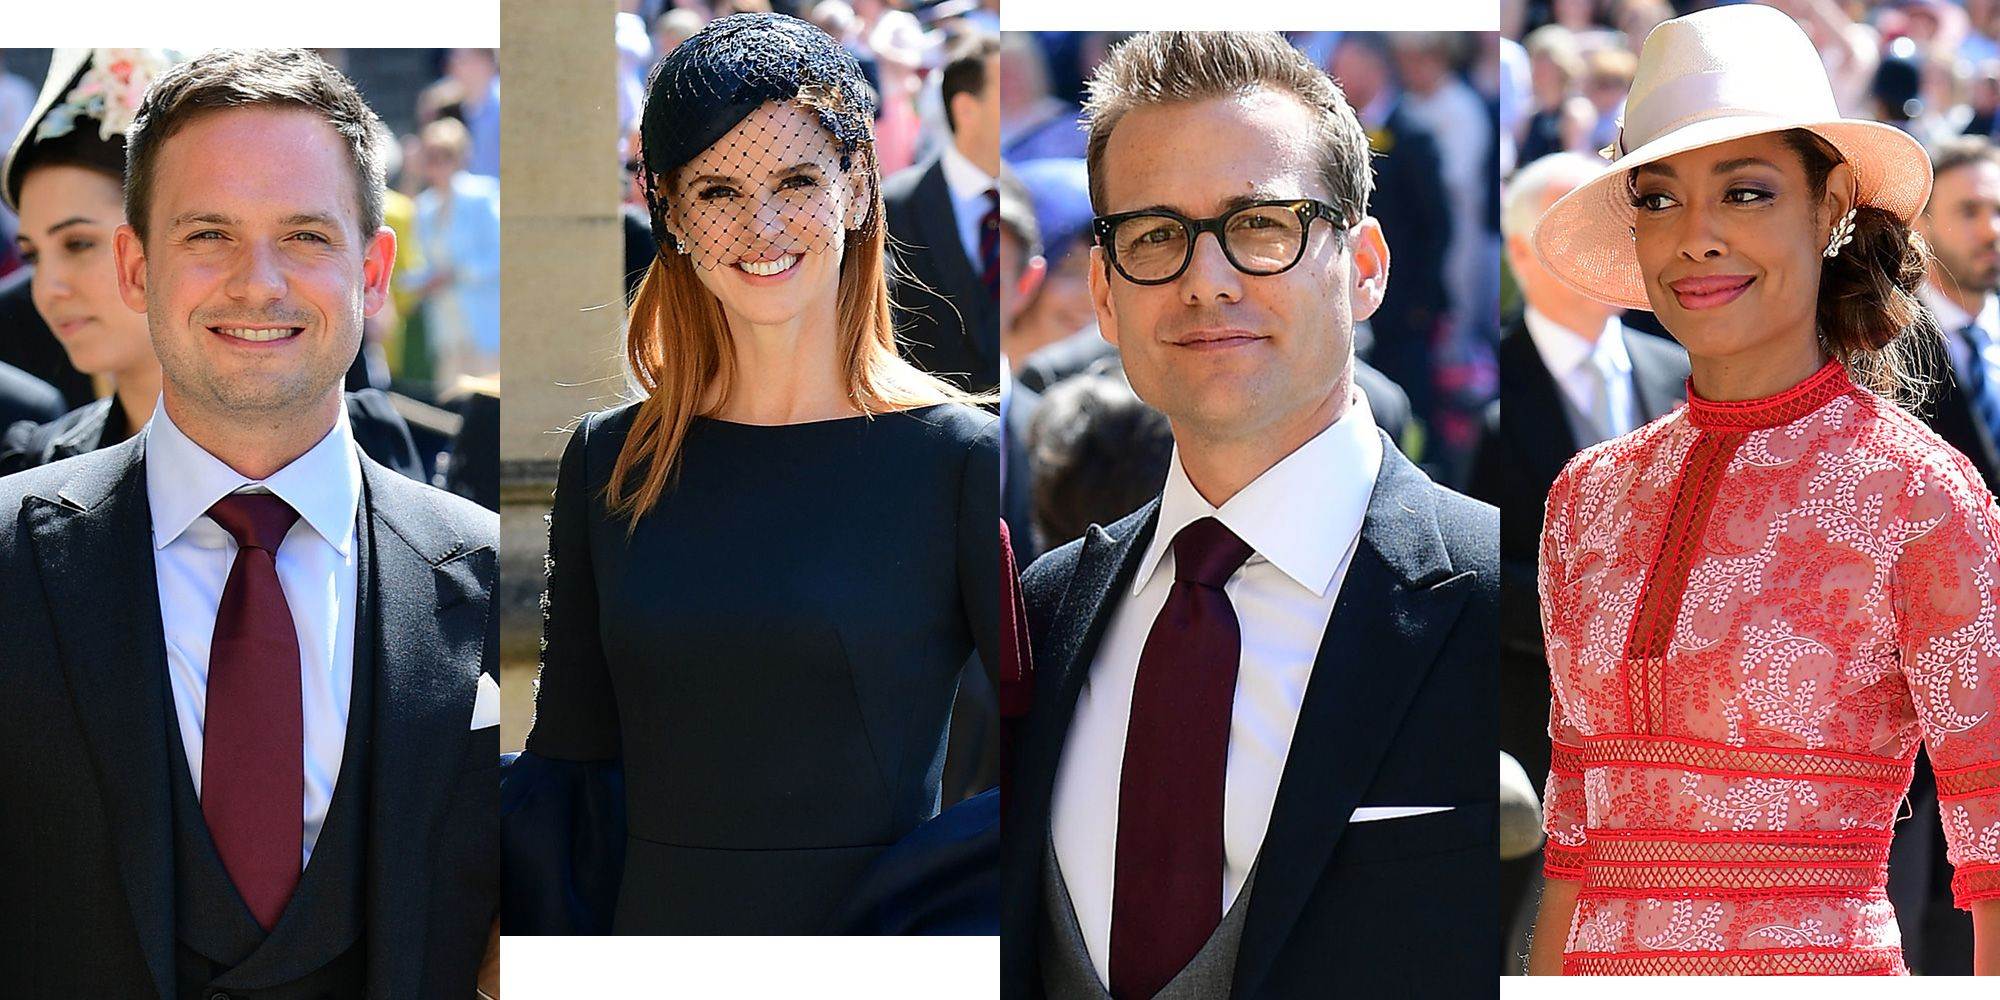 suits cast at royal wedding which suits cast members attended meghan markle s wedding suits cast at royal wedding which